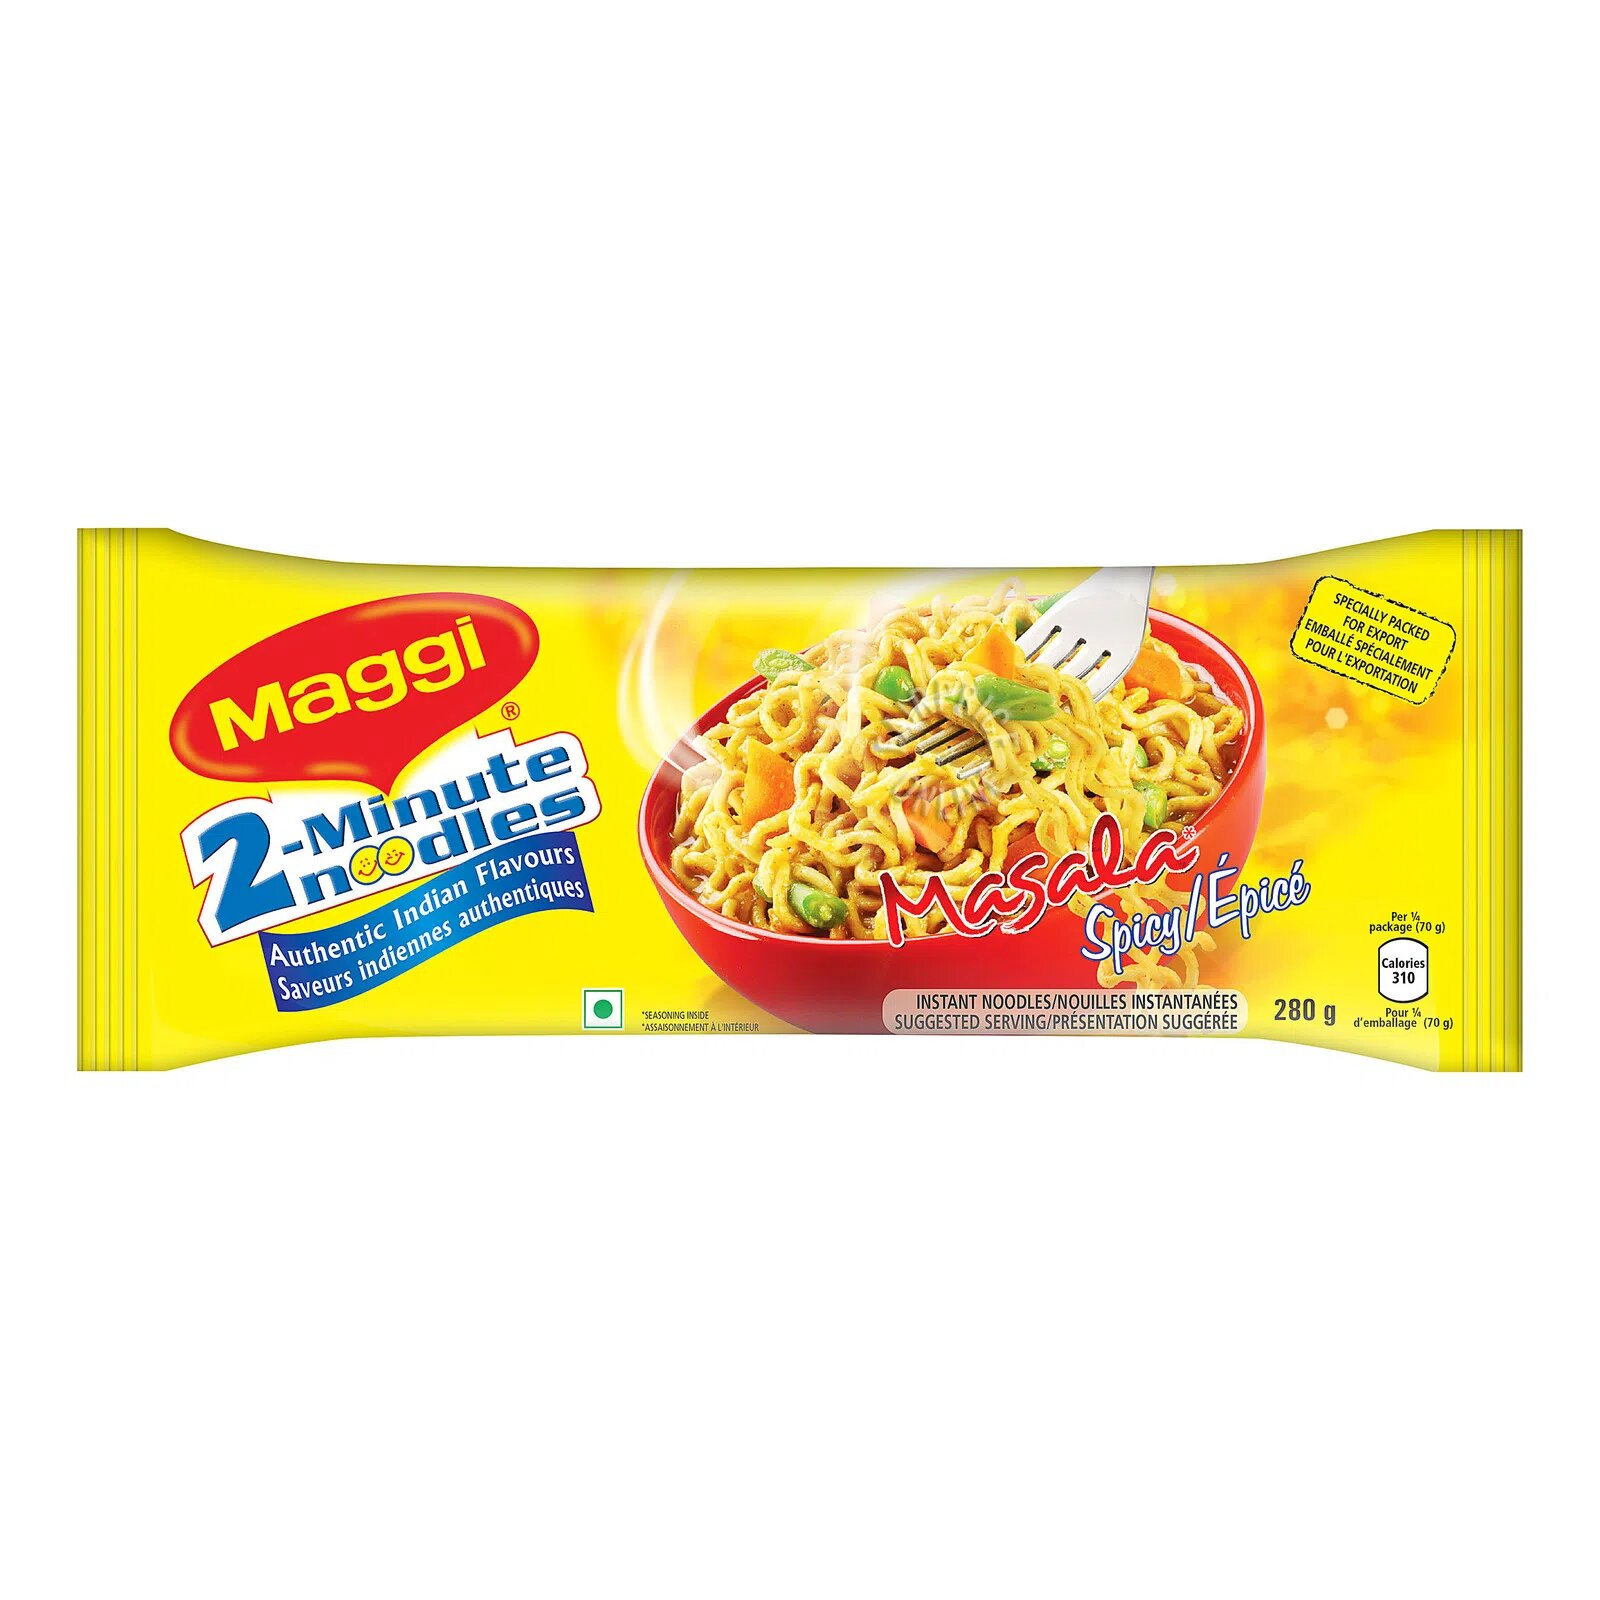 Maggi 2-Minute Instant Noodle - Masala (Spicy)